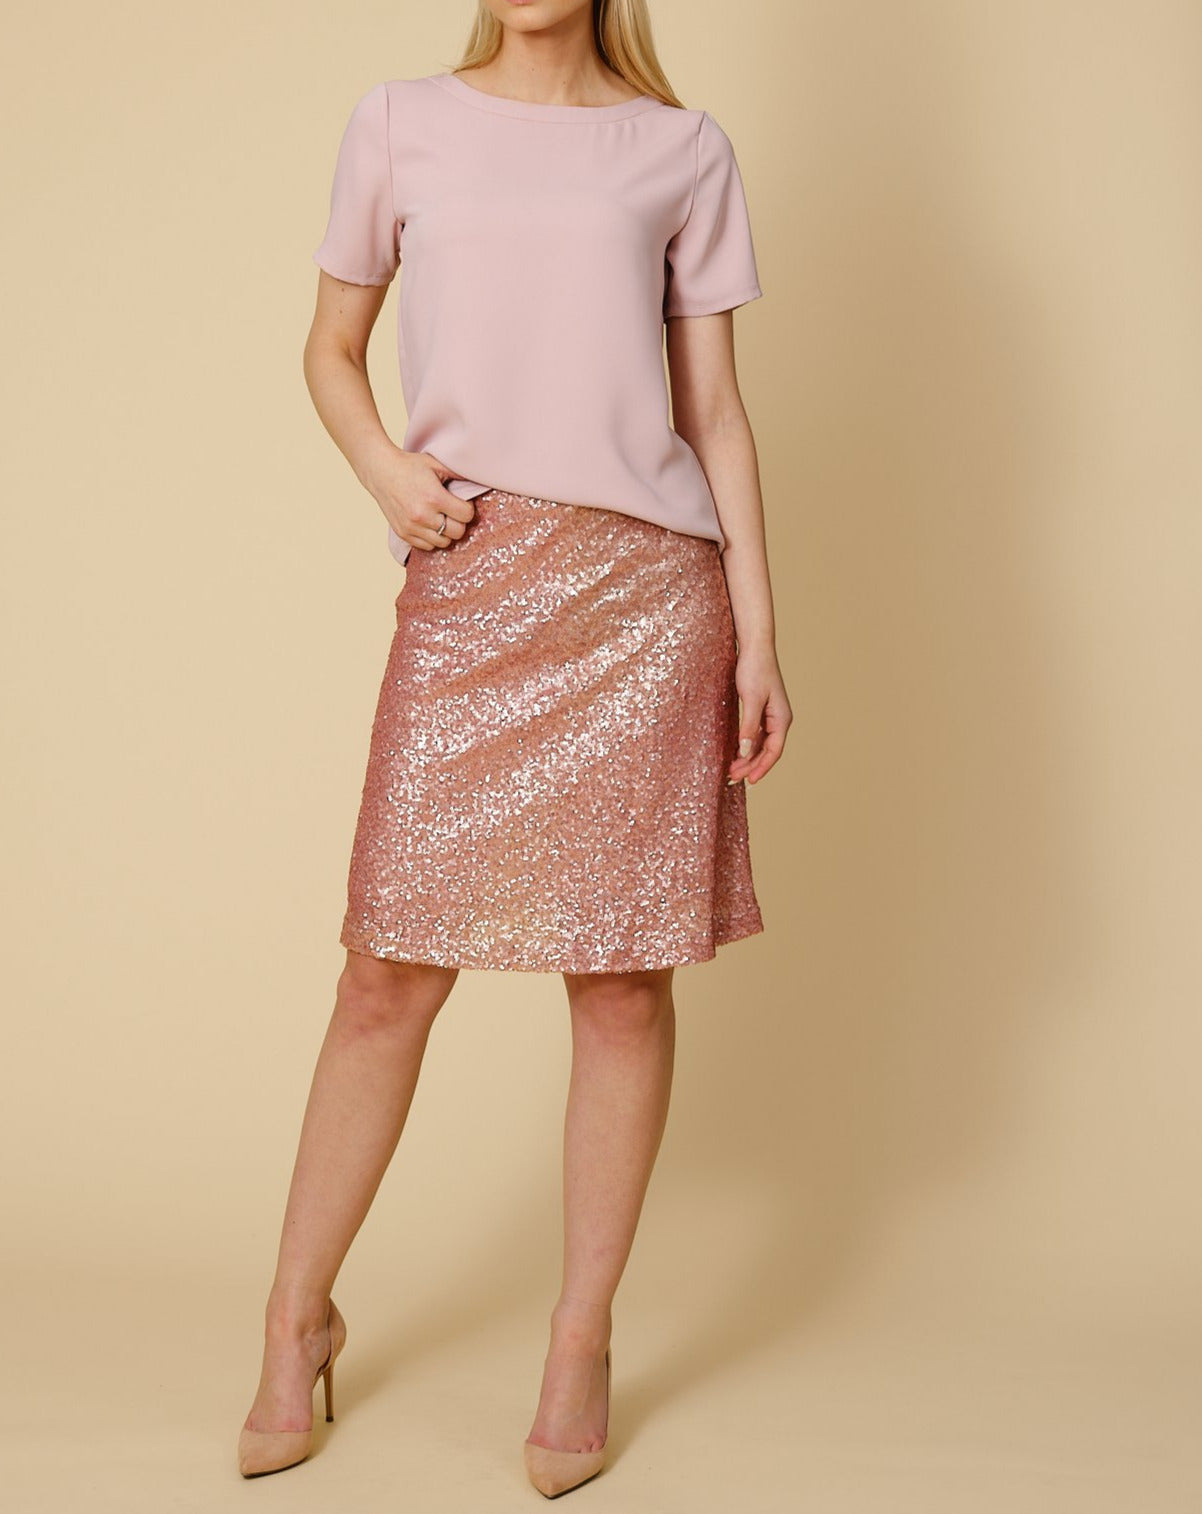 Skirt Jackie in pink sequins